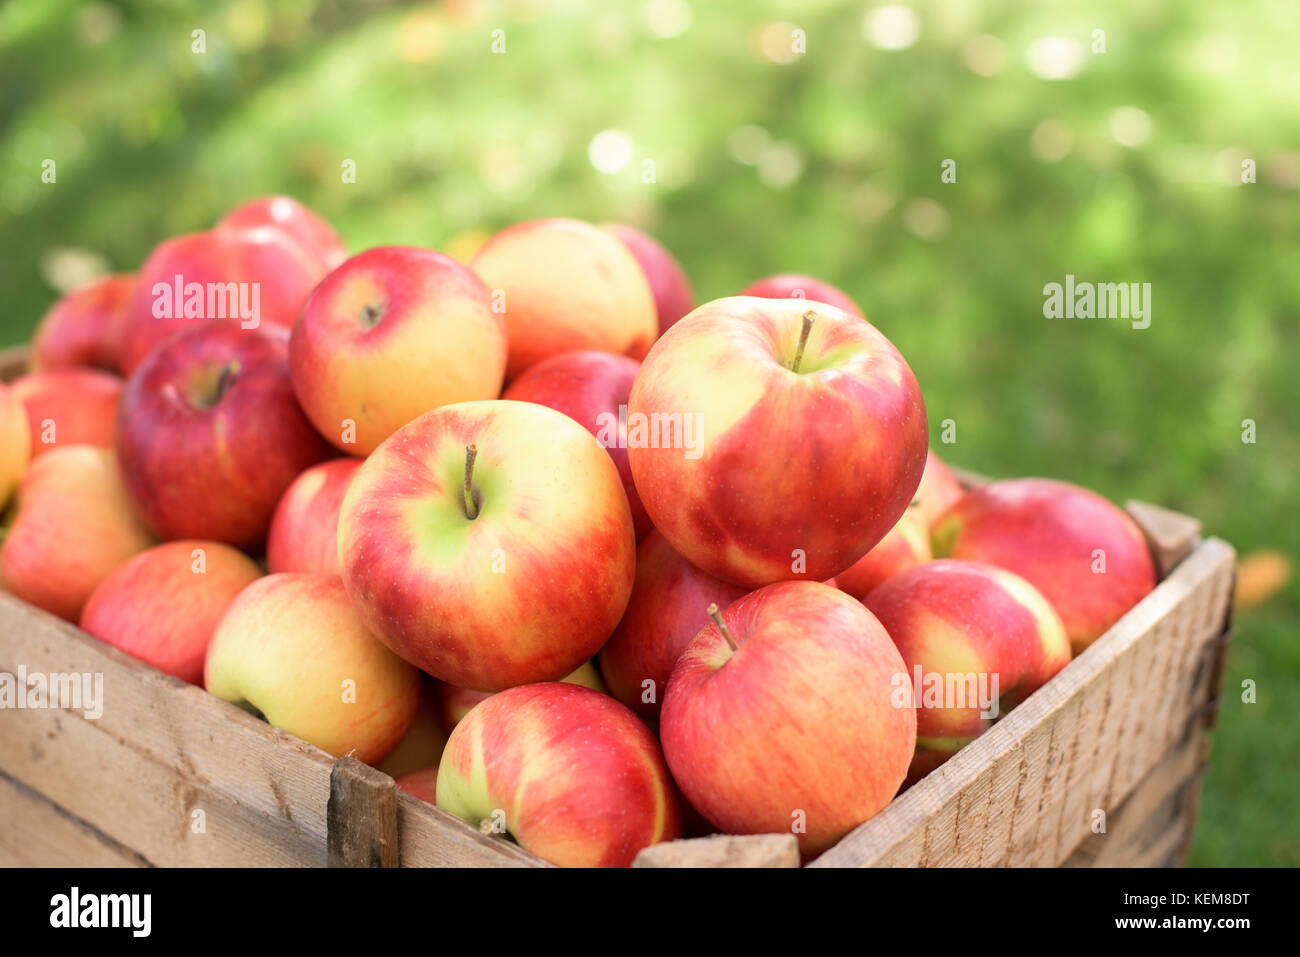 Juicy red apples in a wooden cassette - Stock Image